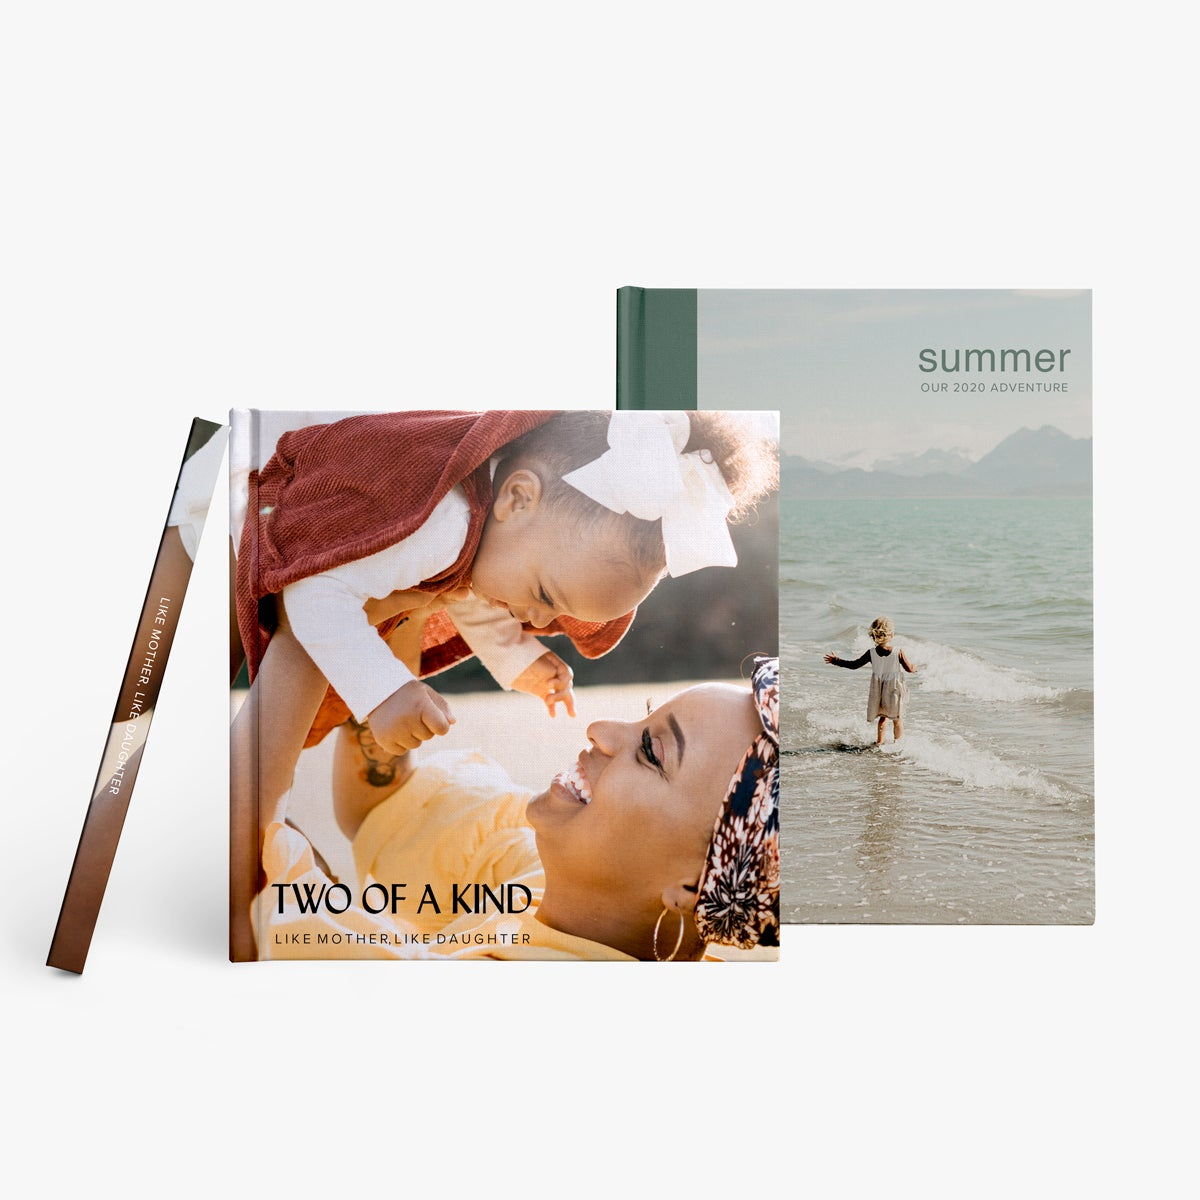 Photo-Wrapped Hardcover Book